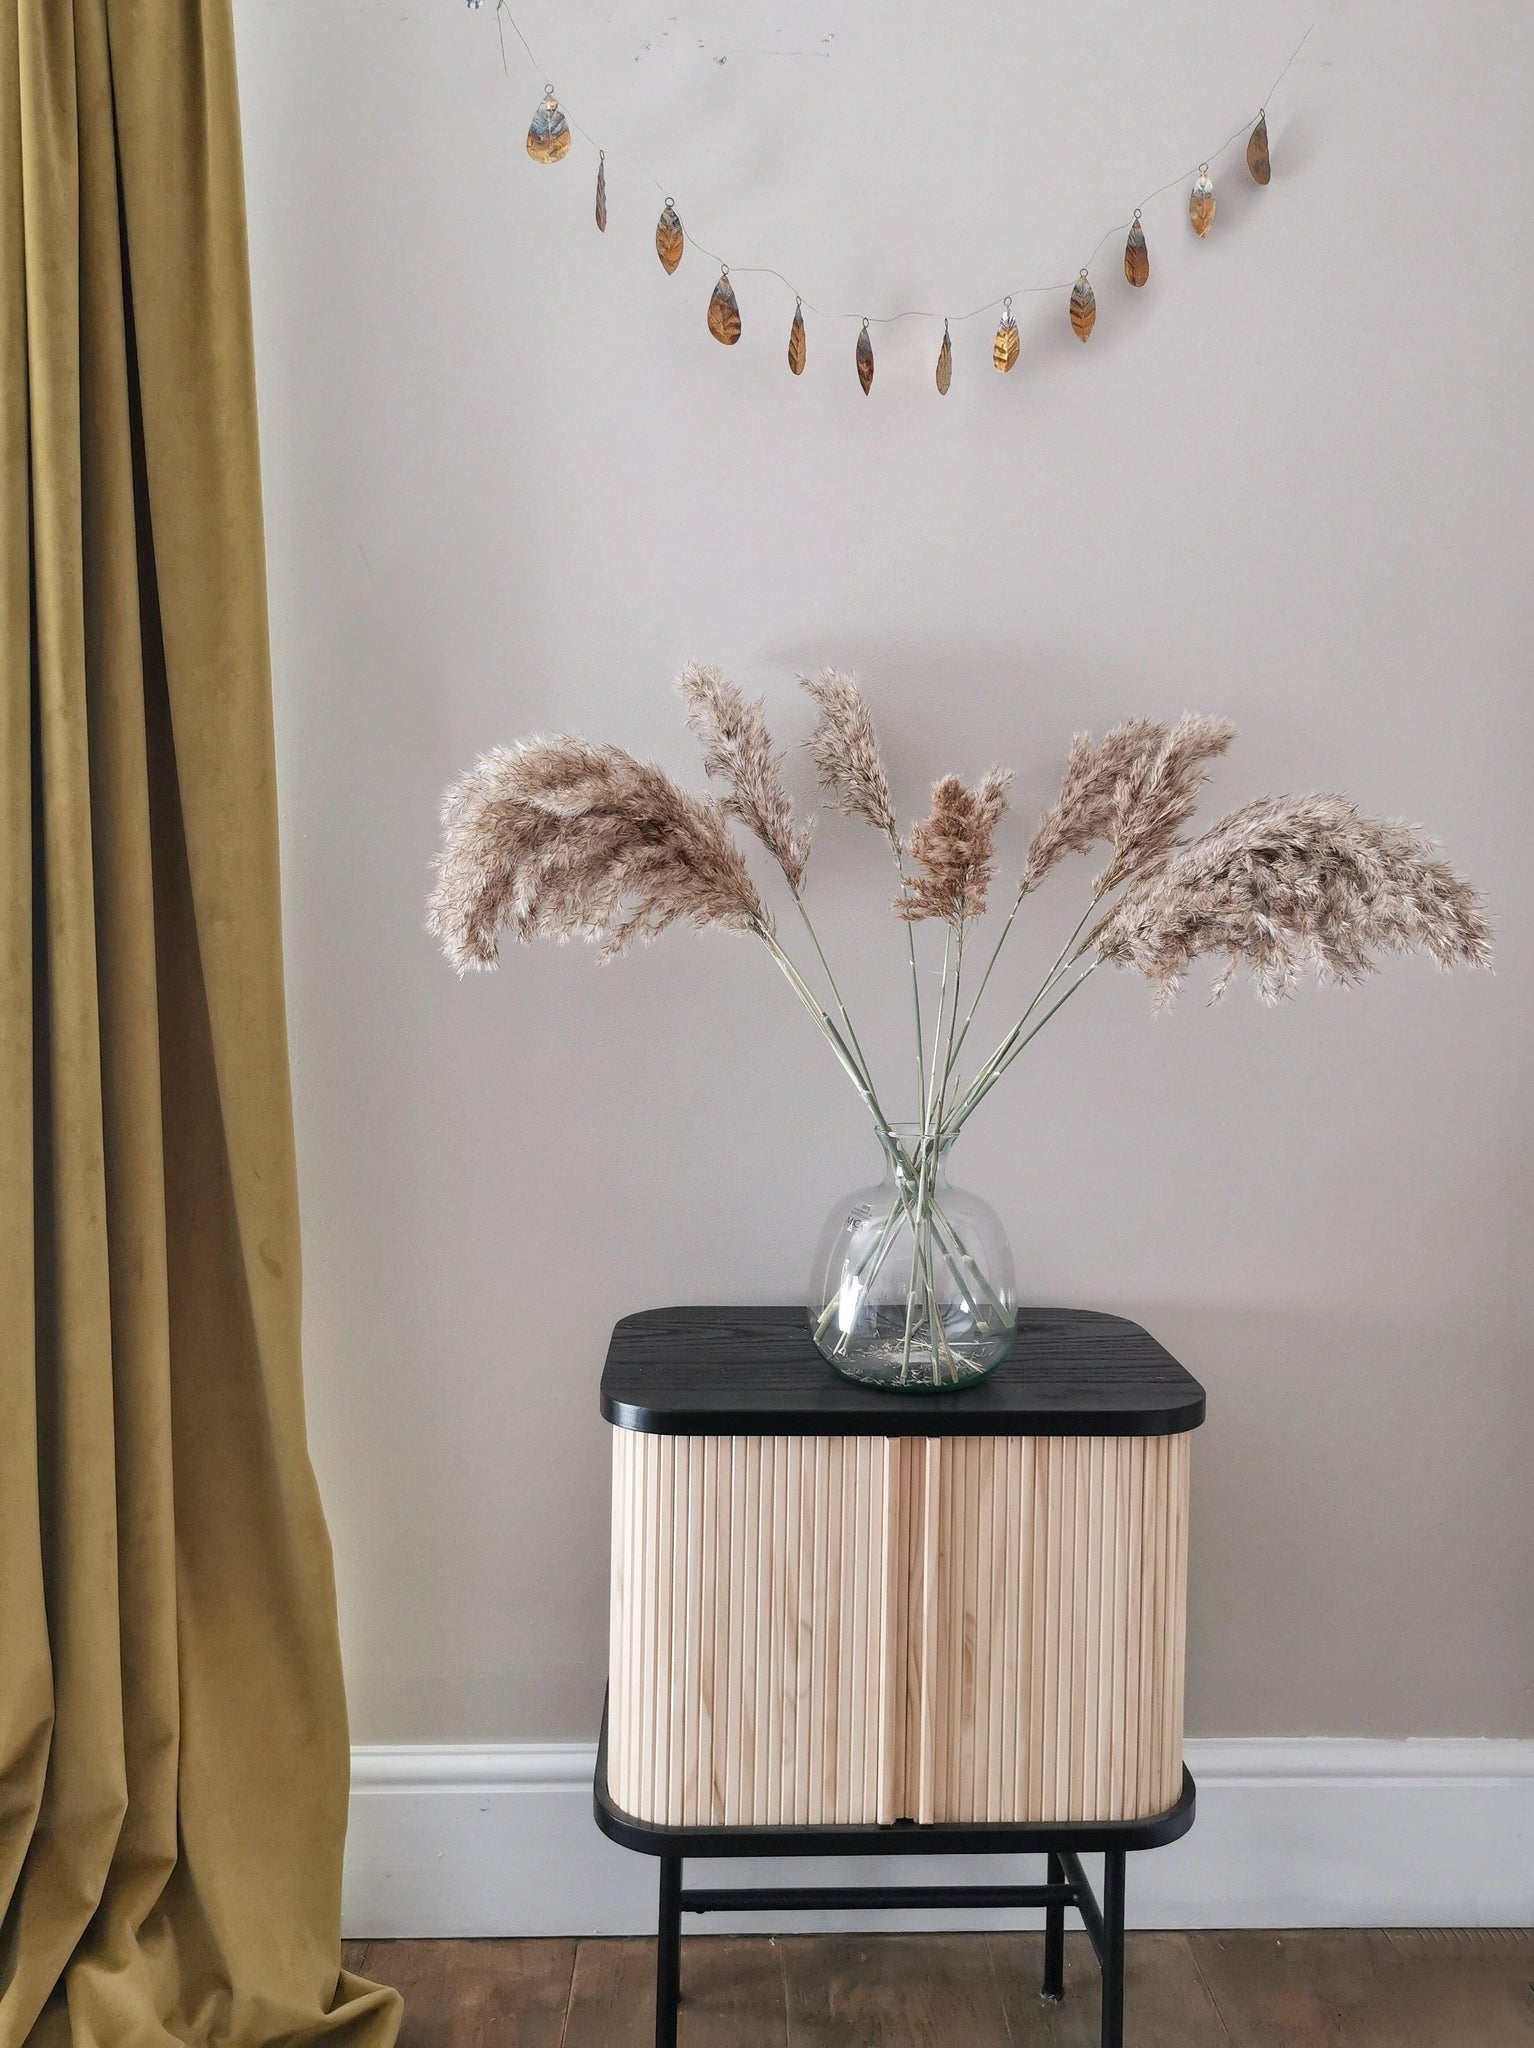 Mini pampas grass and small bottle neck vase